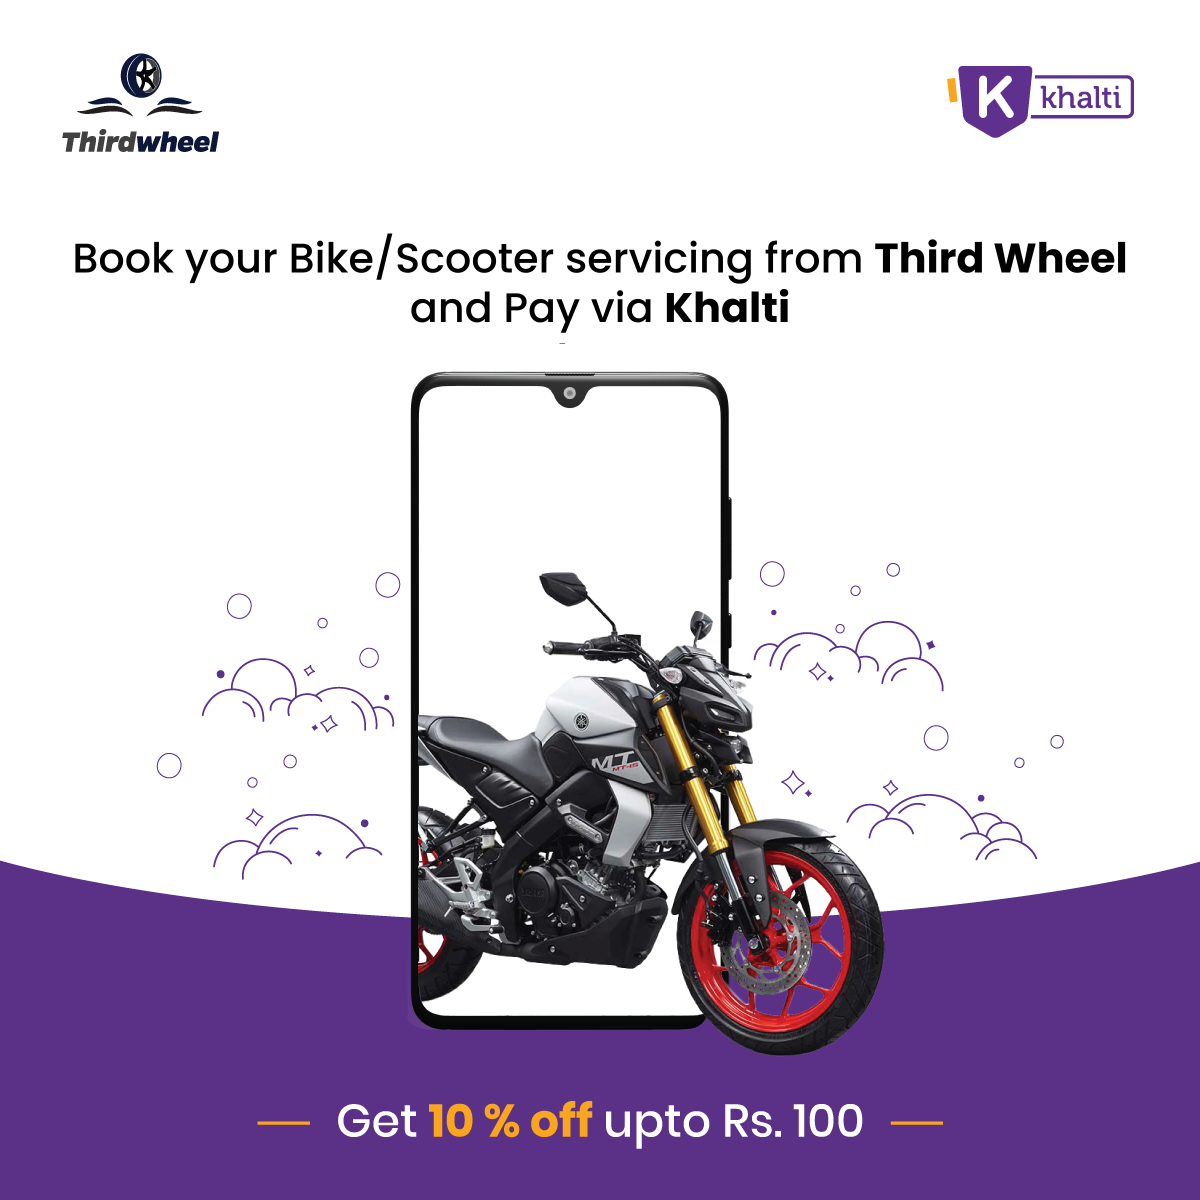 Take your bike for a fitness check at Third Wheel & get 10% cashback by paying via Khalti wallet